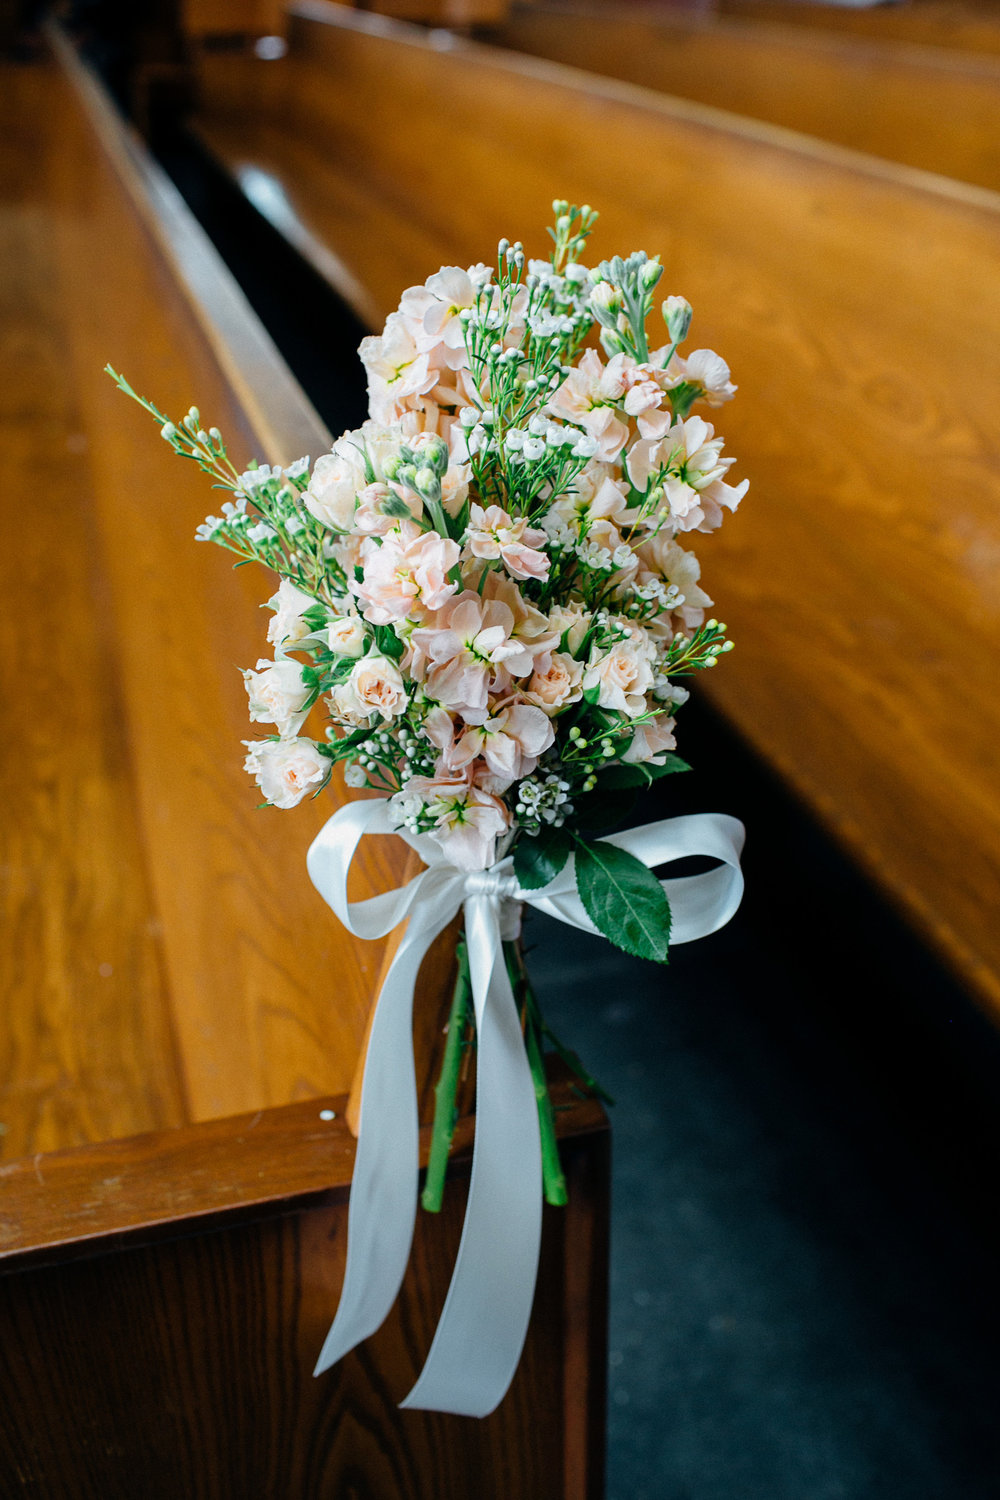 dd575-elegant-country-charm-ranch-wedding-soft-pink-floral-bouquets-line-the-pews.jpg